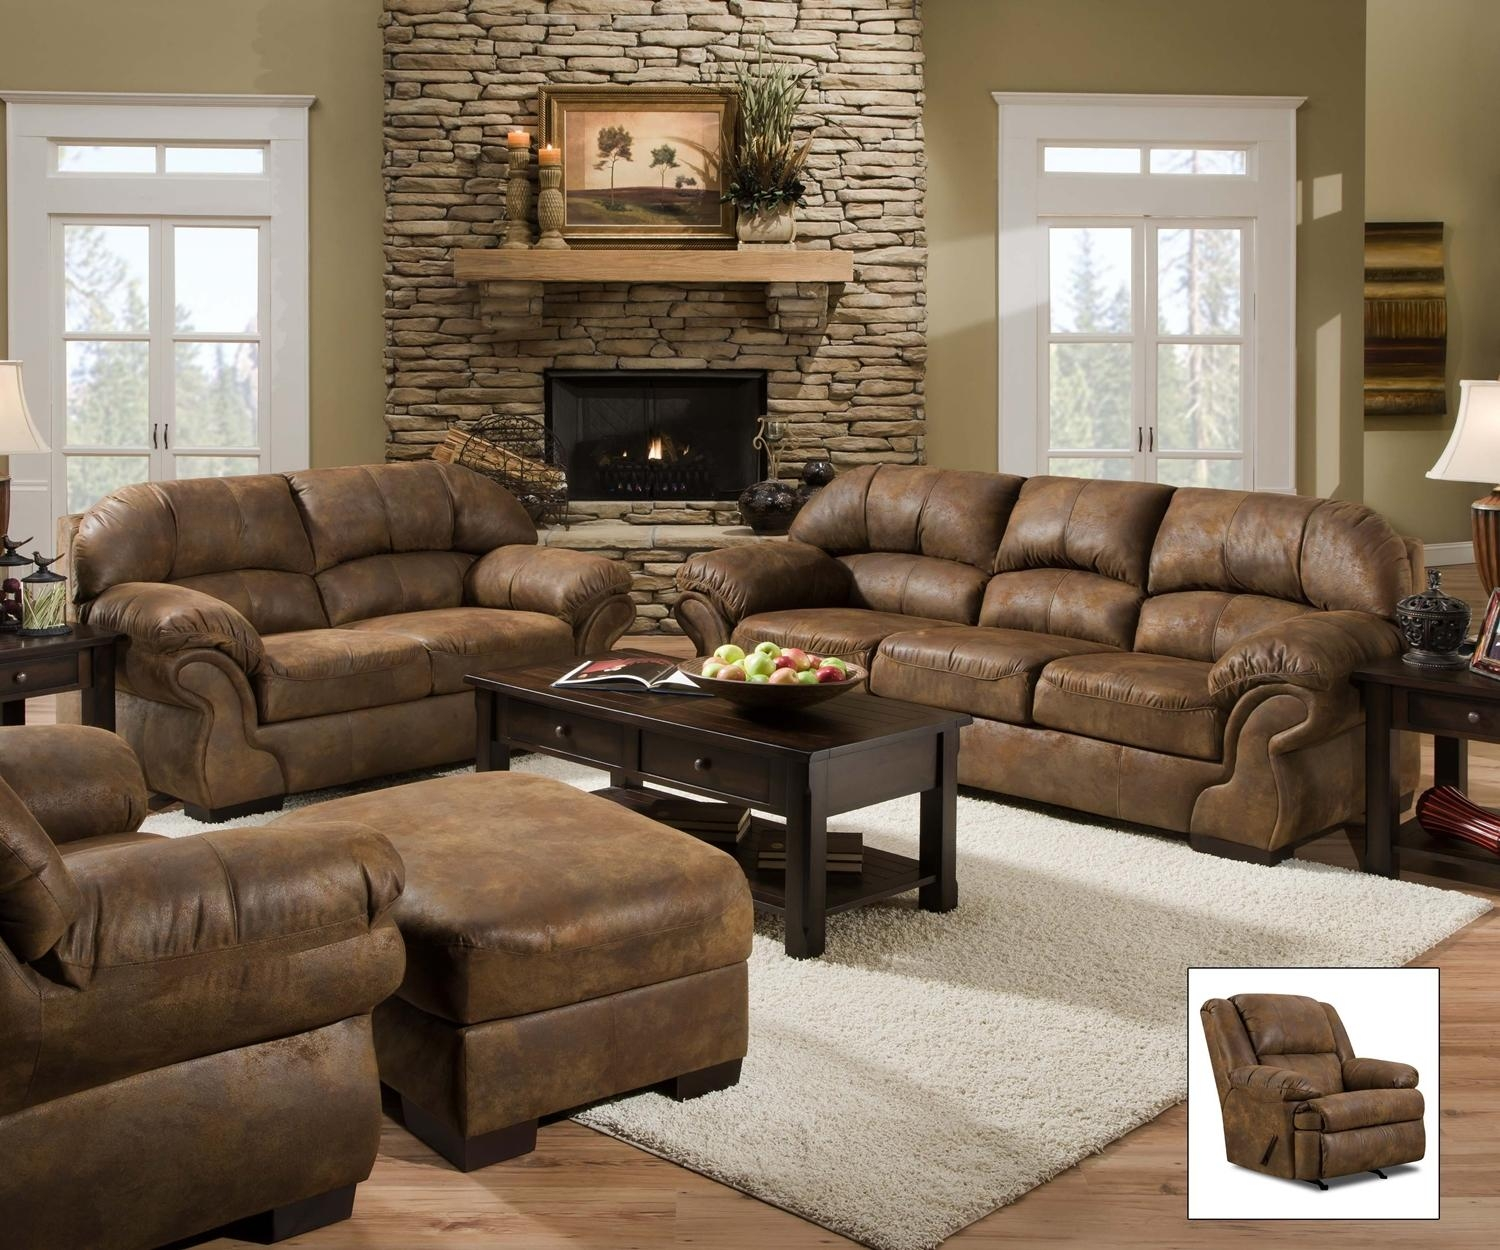 Pinto Tobacco Faux Leather Sofasimmons In Simmons Leather Sofas (Image 4 of 20)